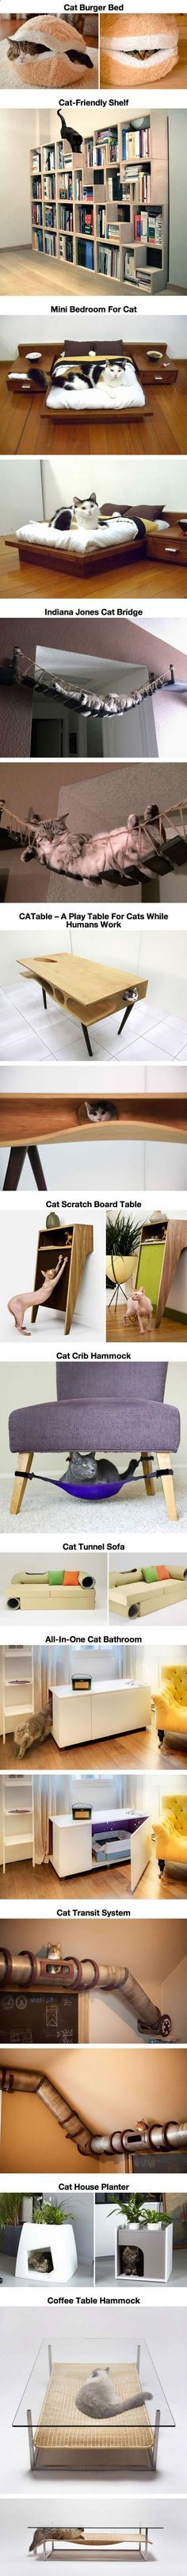 Cats Toys Ideas - Ei